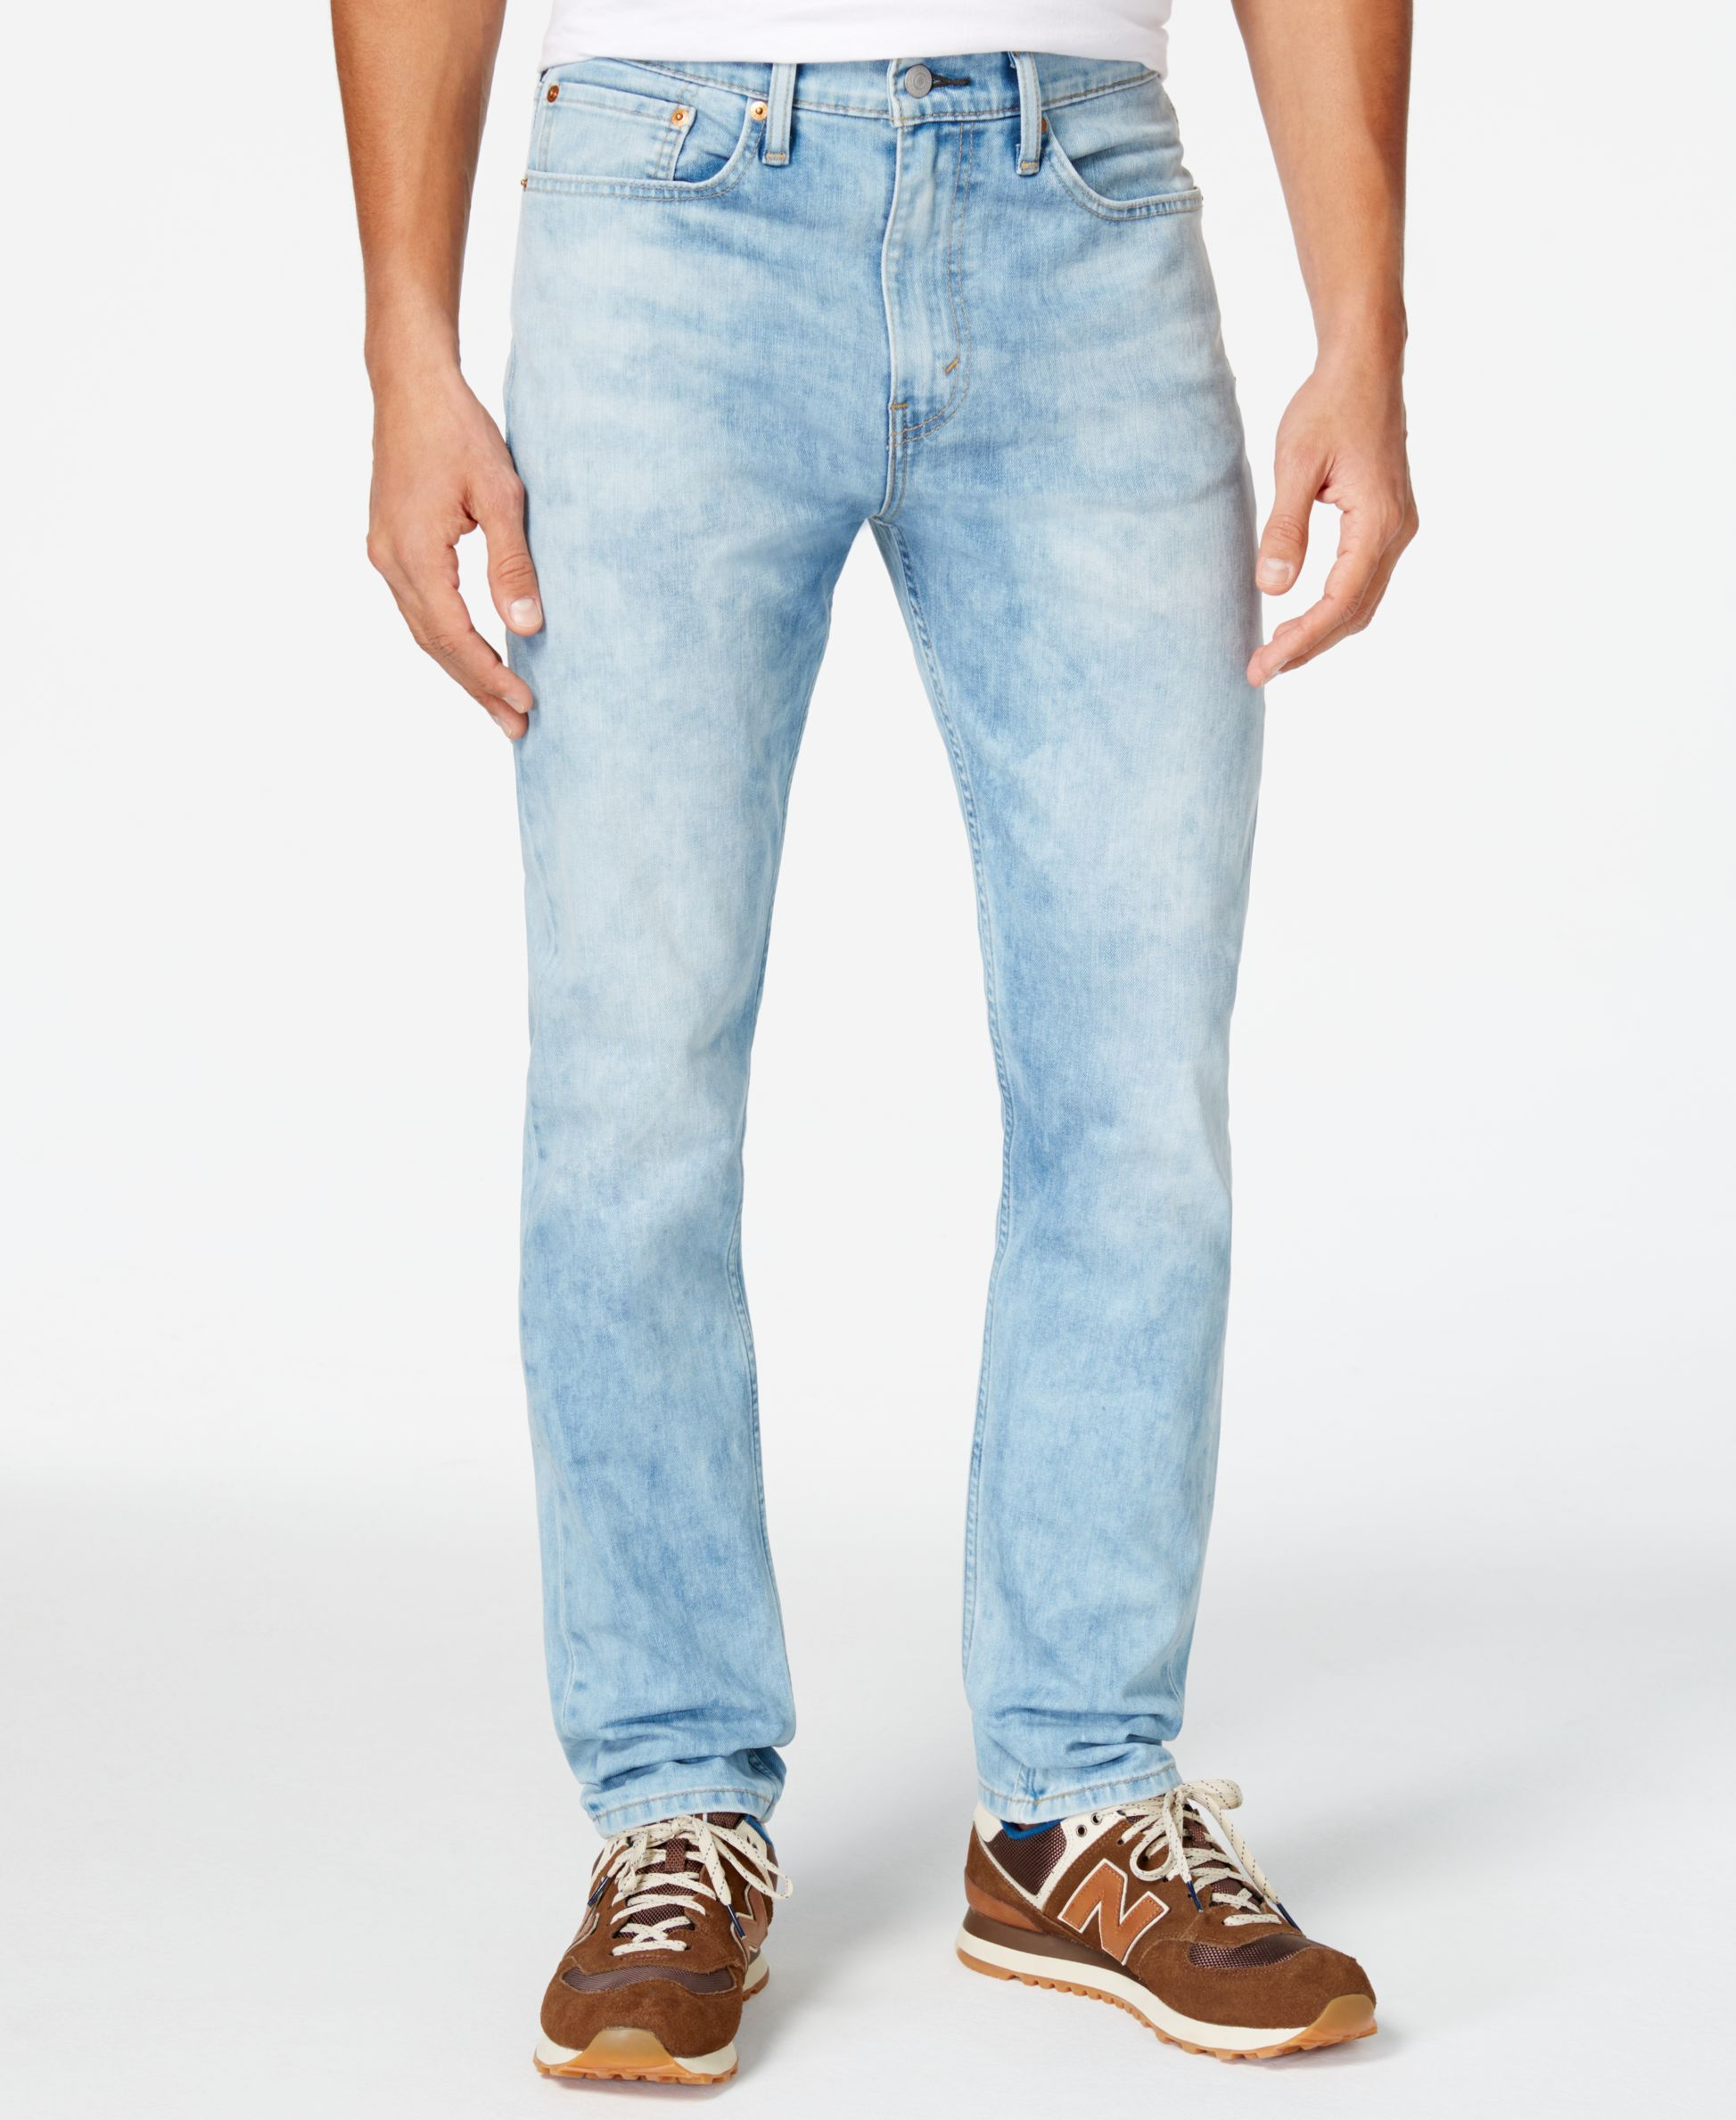 Levi's 508 slim fit jeans limited edition